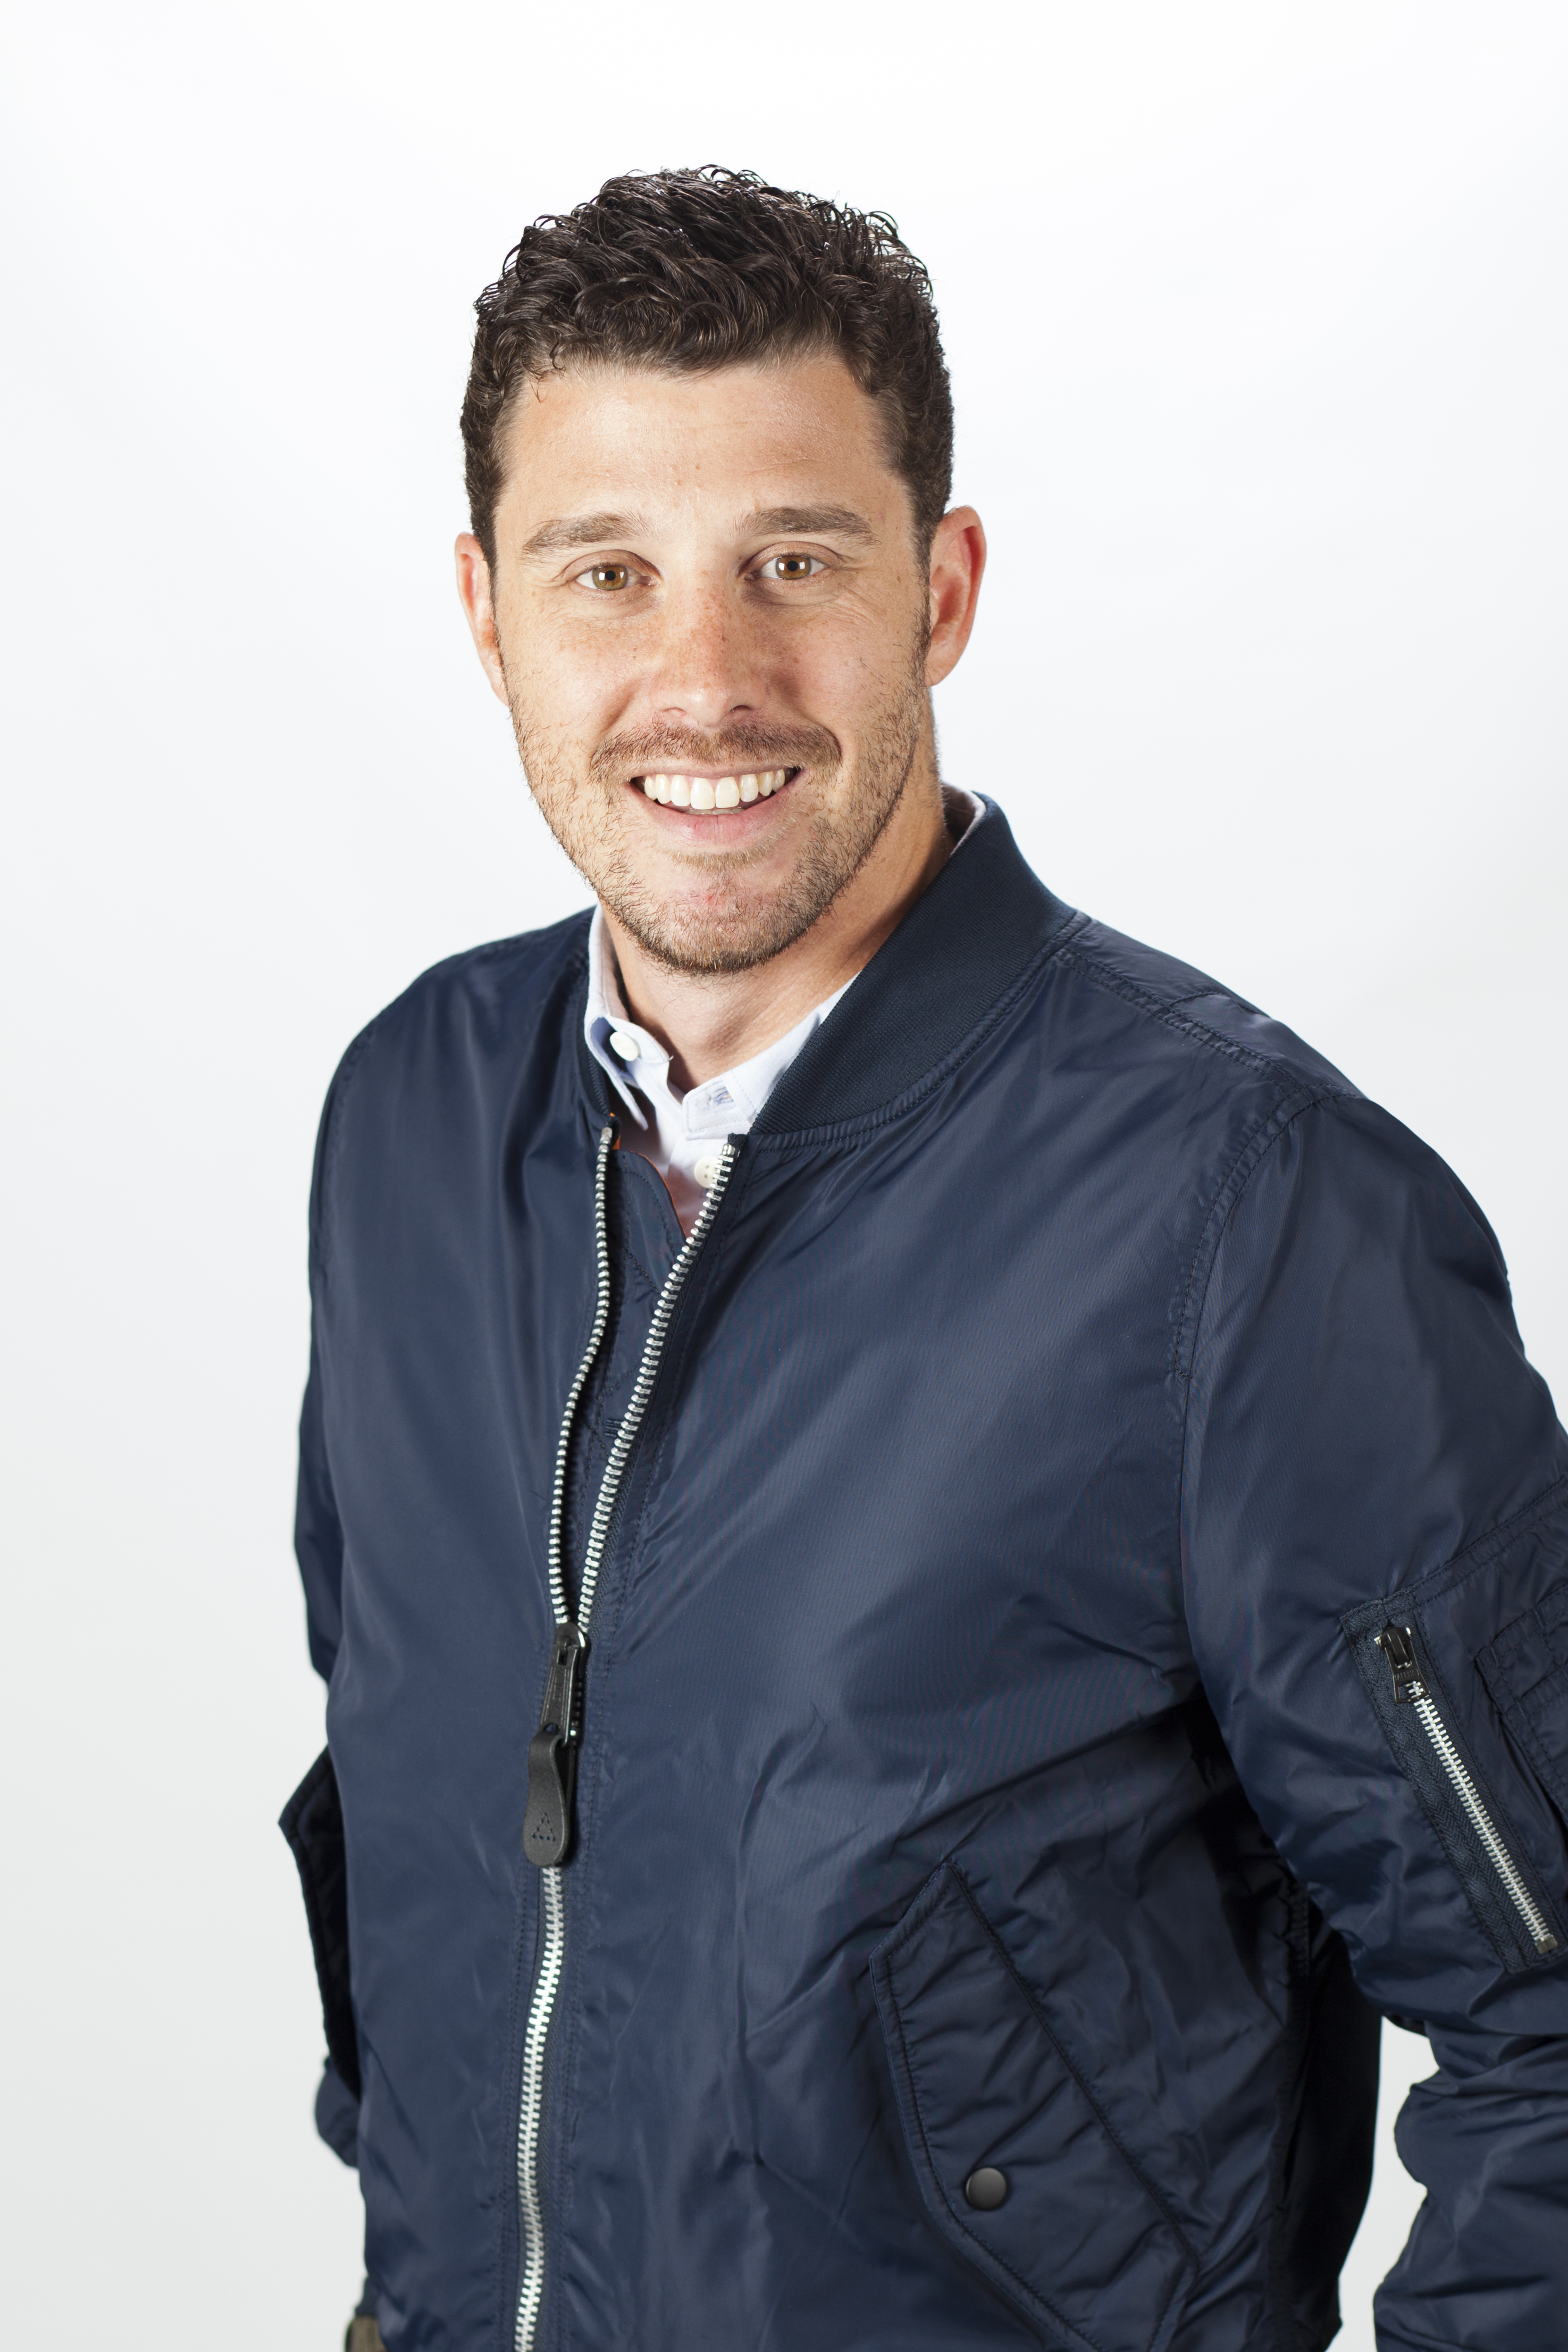 Alpha Industries' ceo Mike Cirker